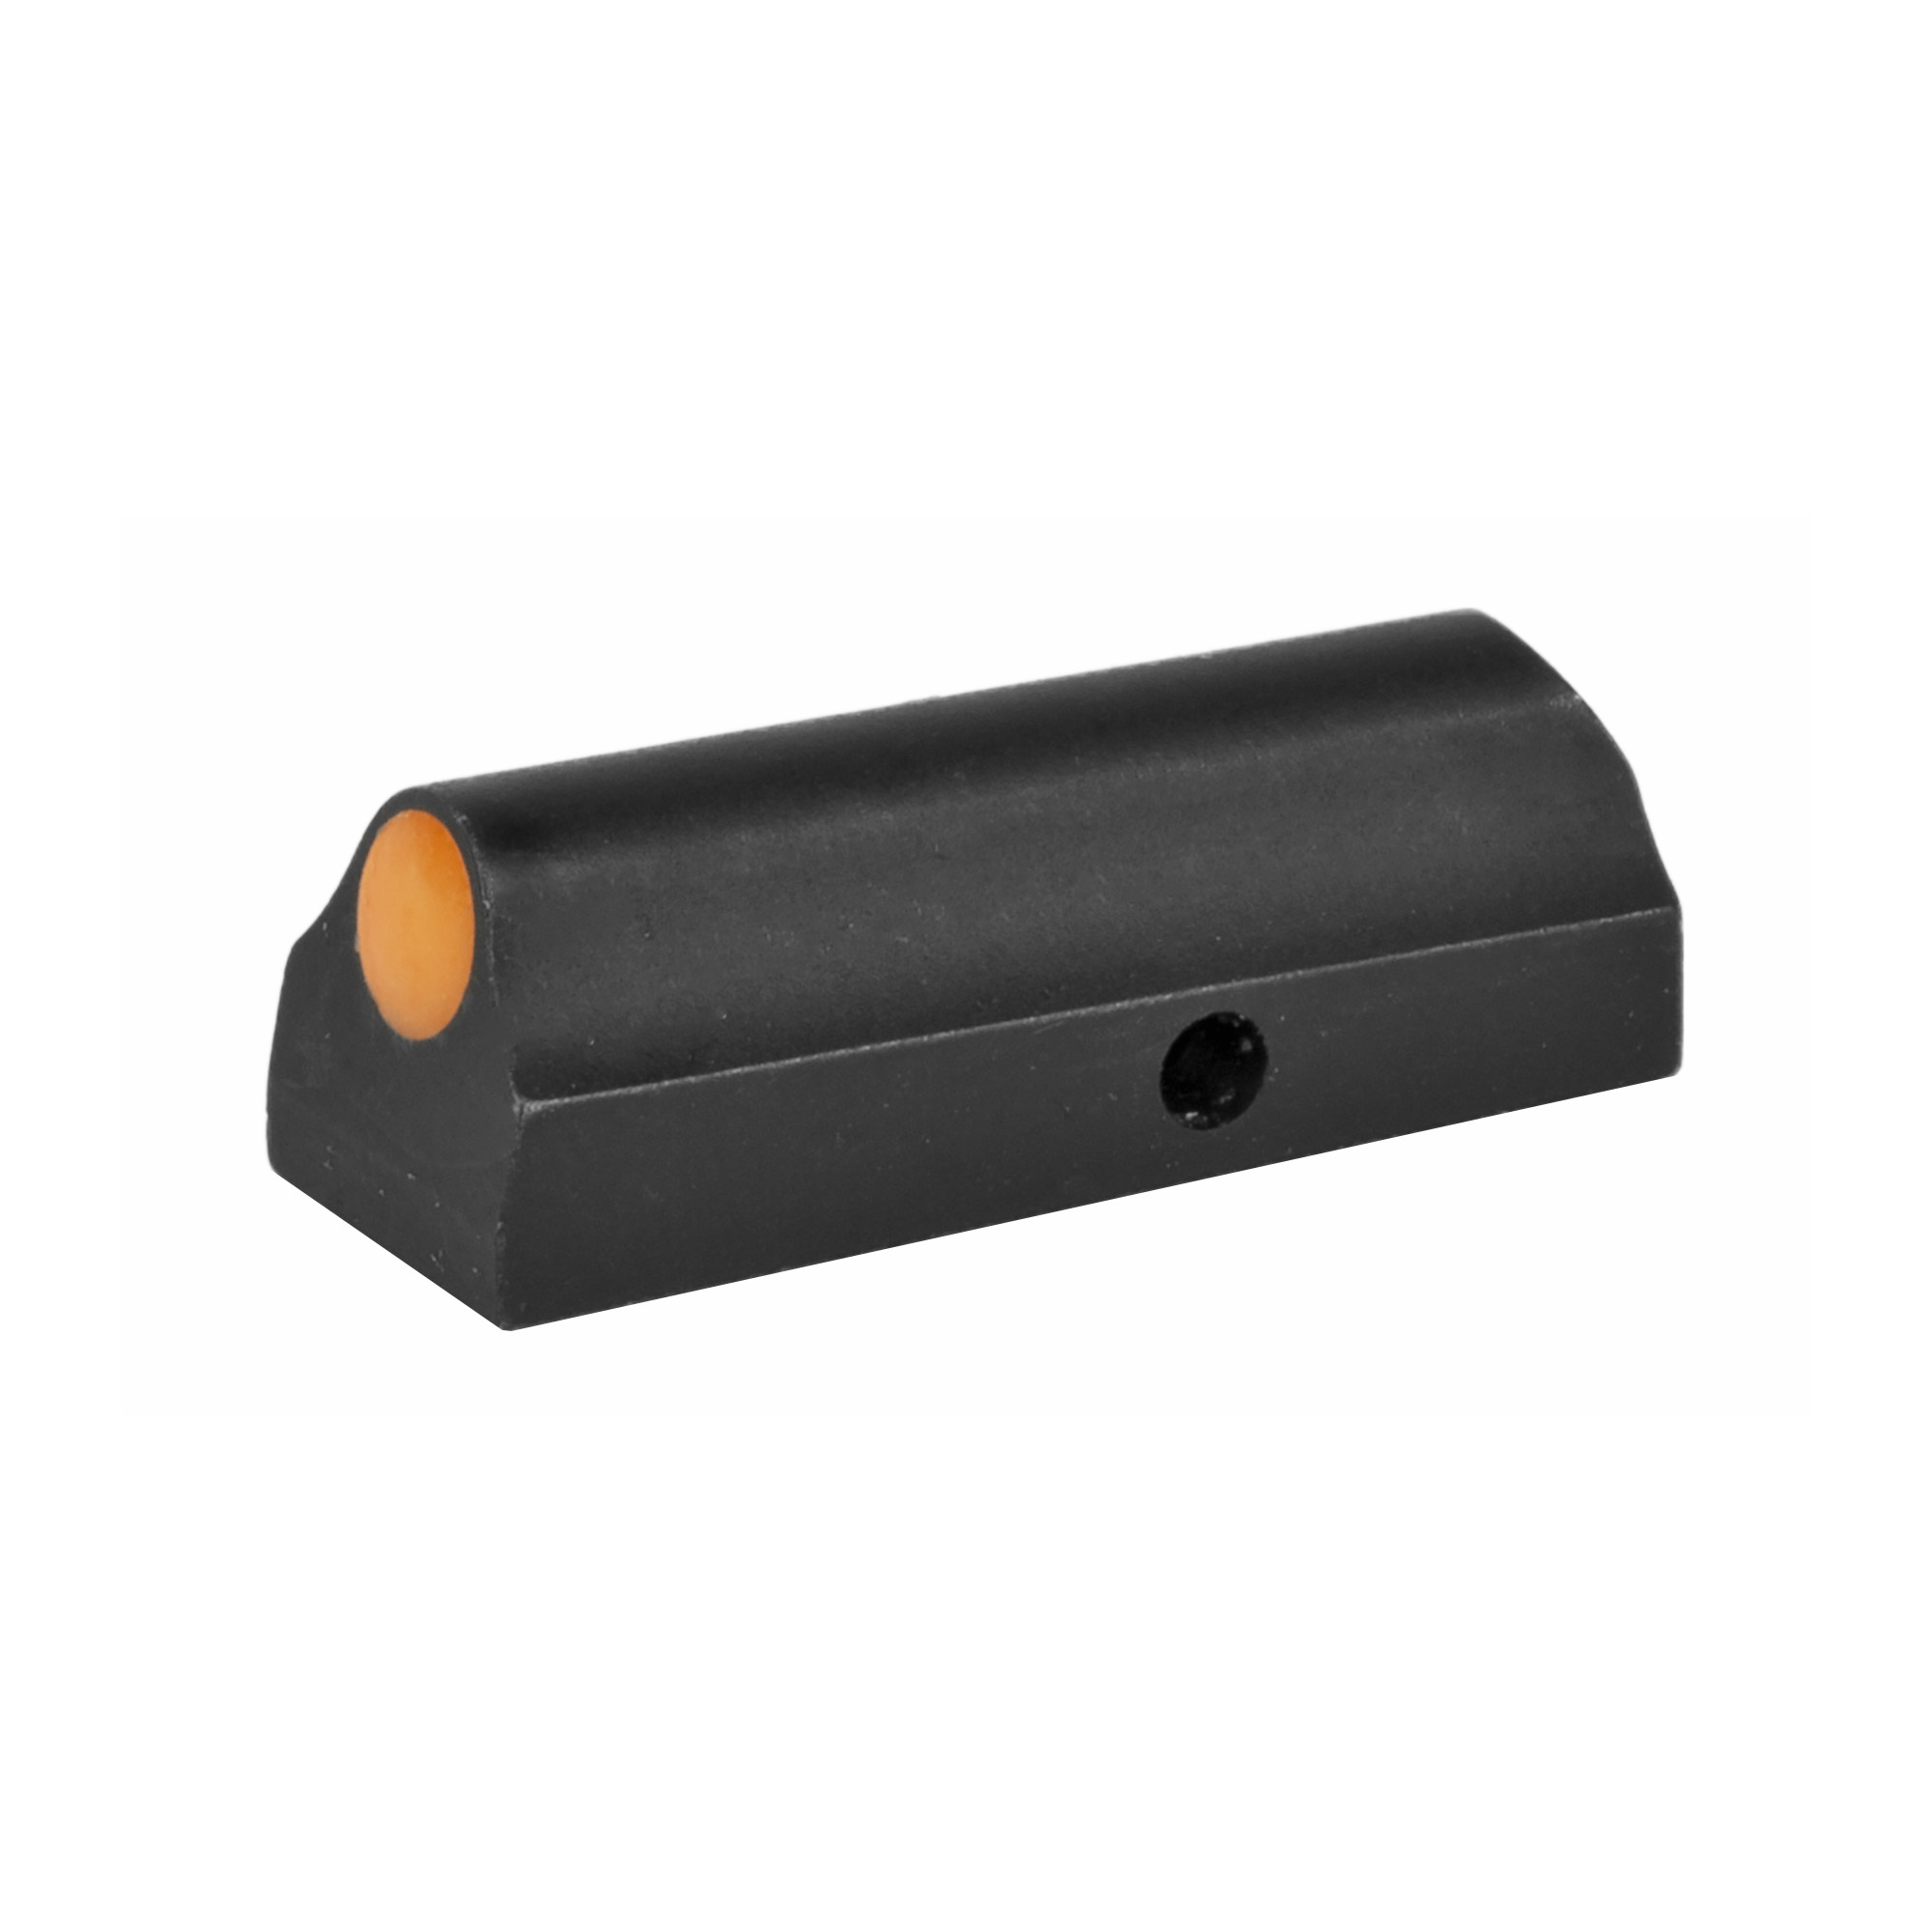 XS Sight Systems Ember Standard Dot Orange Ruger LCR .22LR/.22WMR/9mm Luger Models Only Front Sight